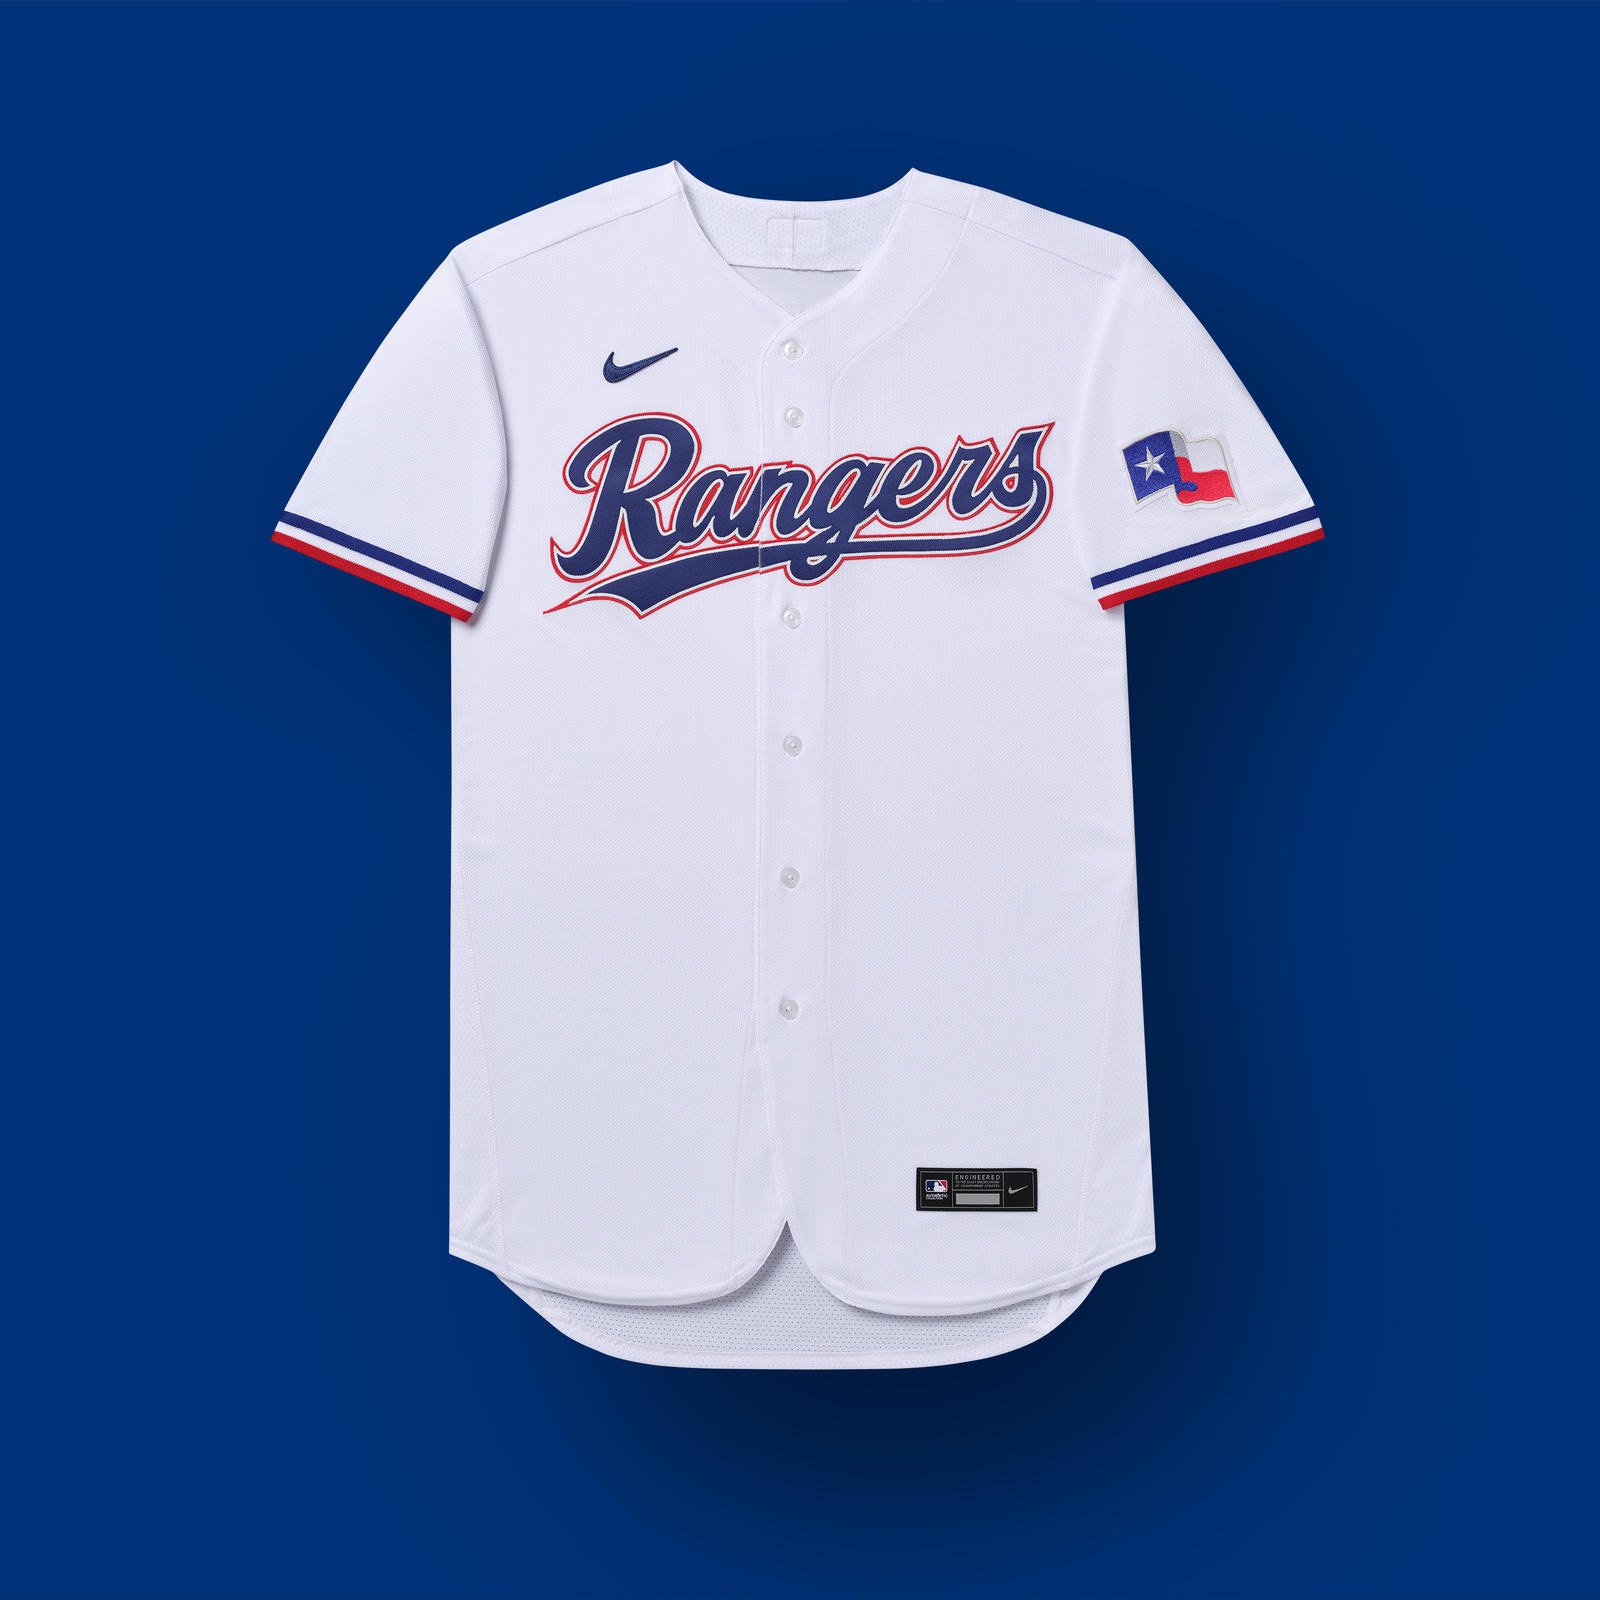 Nike x Major League Baseball Uniforms 2020 Official Images 3